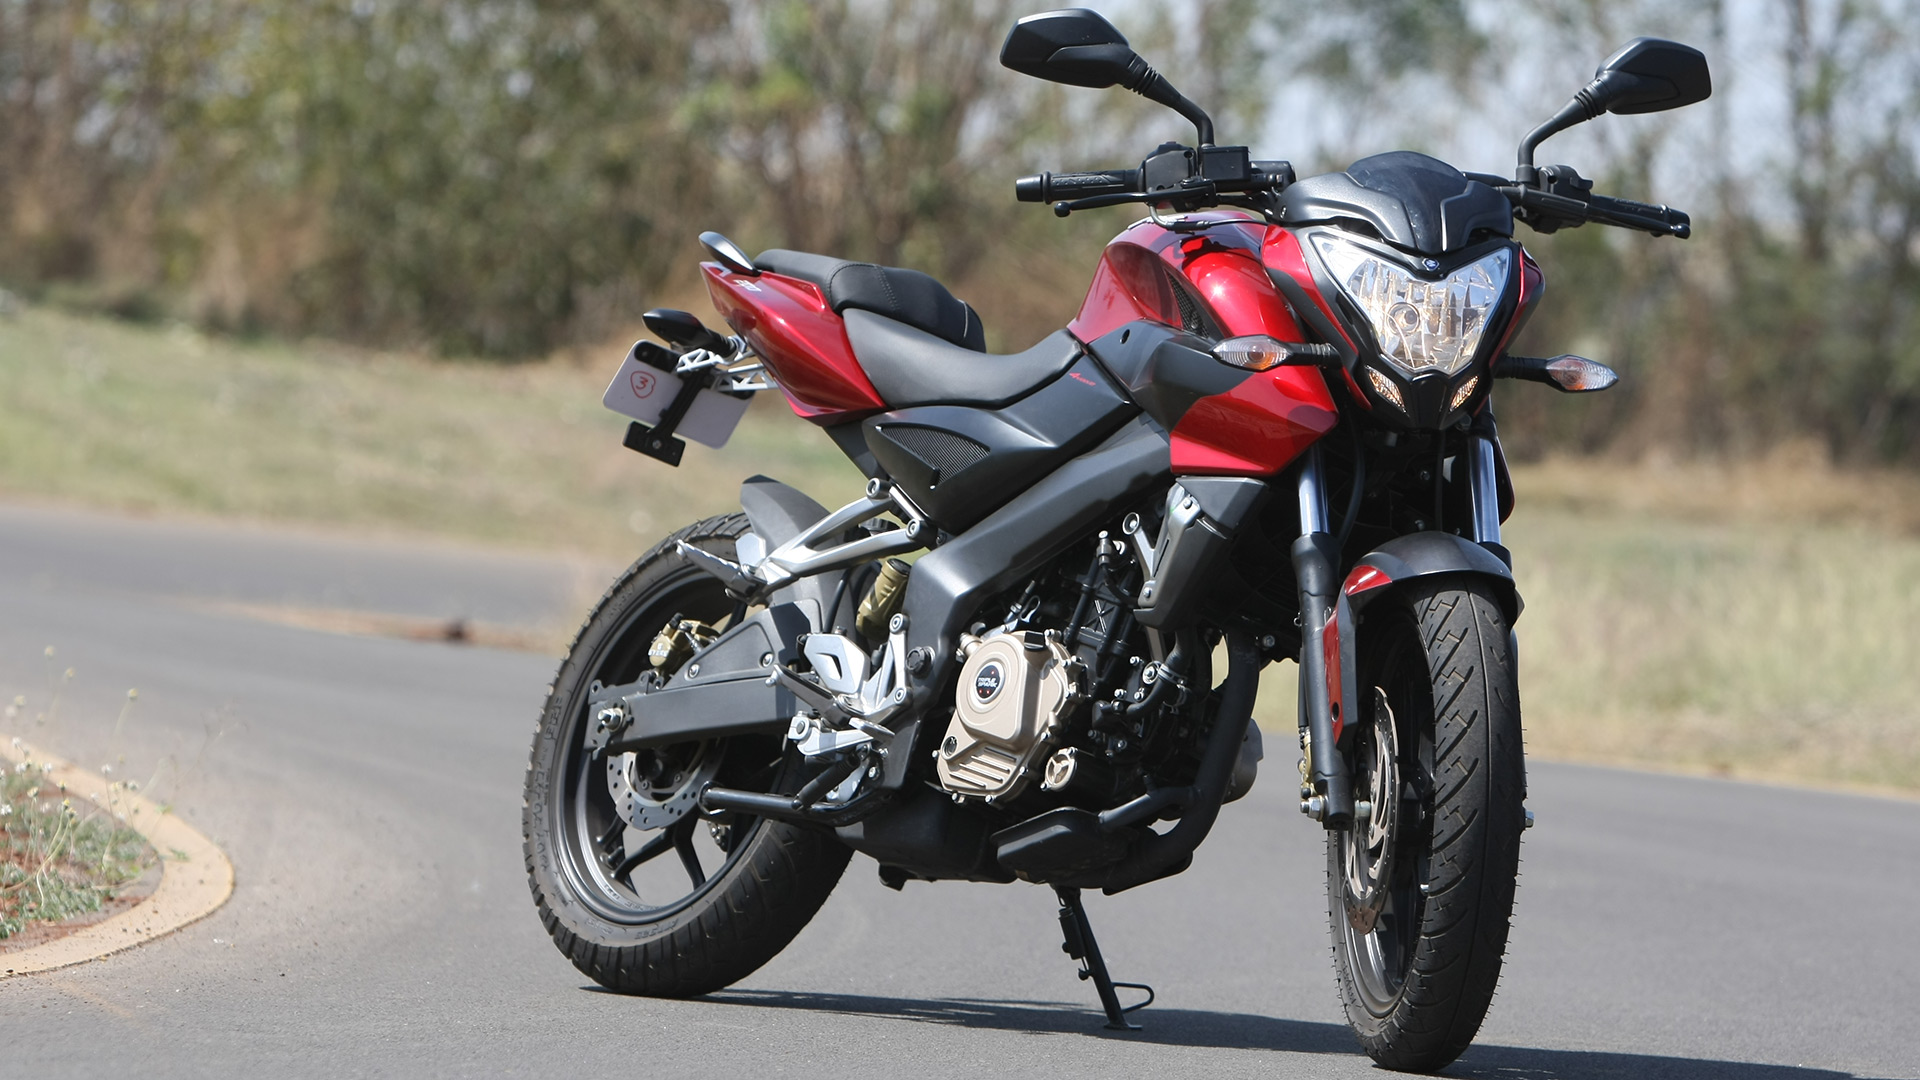 Bajaj Pulsar 200 NS 2013 STD Compare